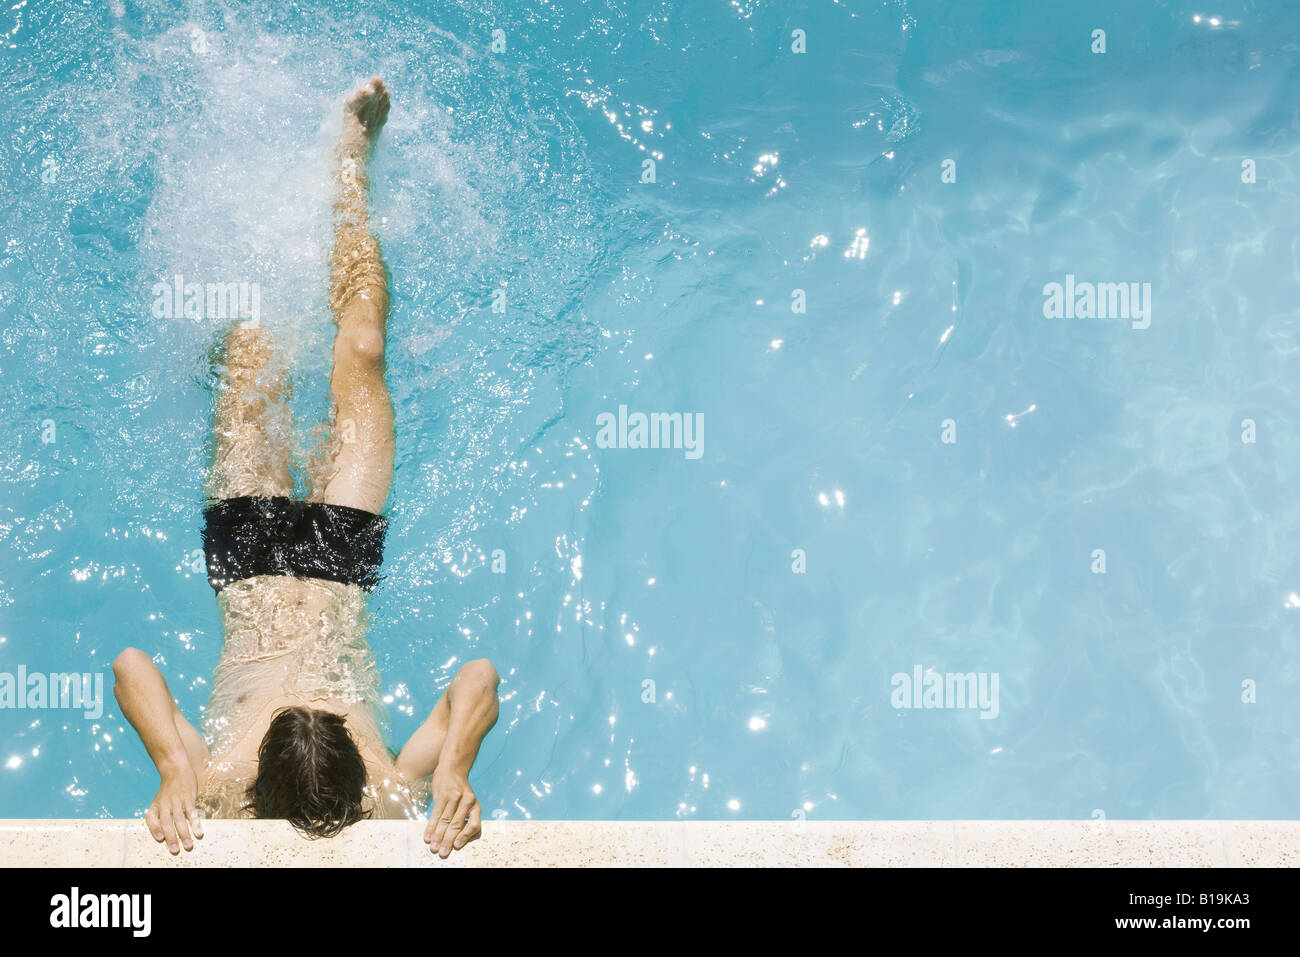 Man holding on to edge of swimming pool, kicking legs, high angle view - Stock Image